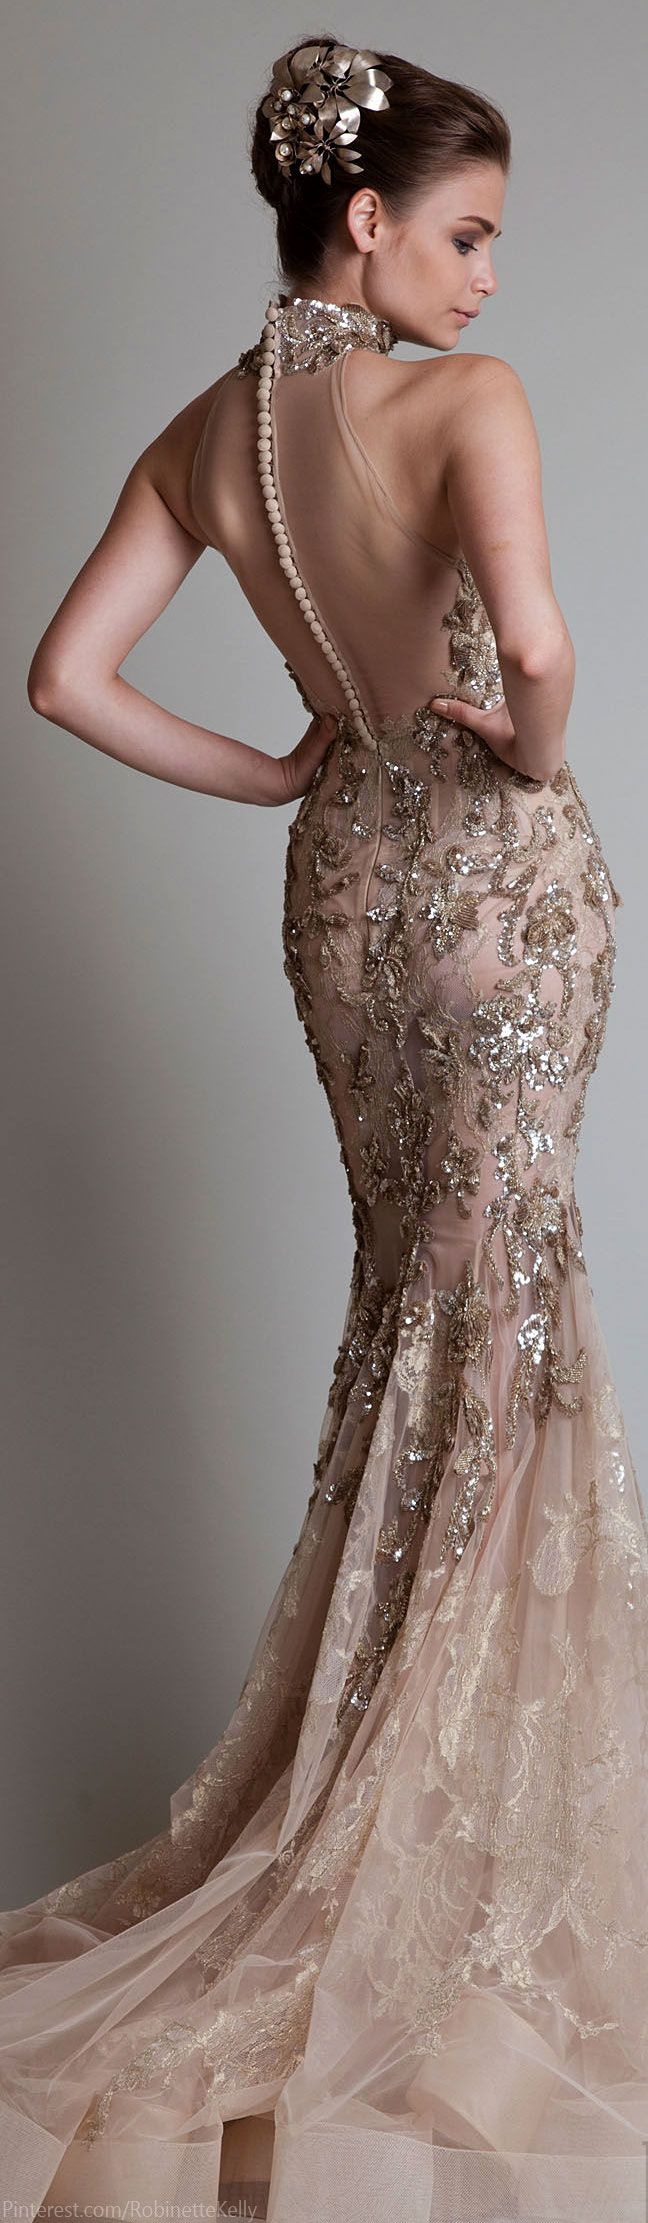 The dress I would choose for my weeding Krikor Jabotian Couture | 2014